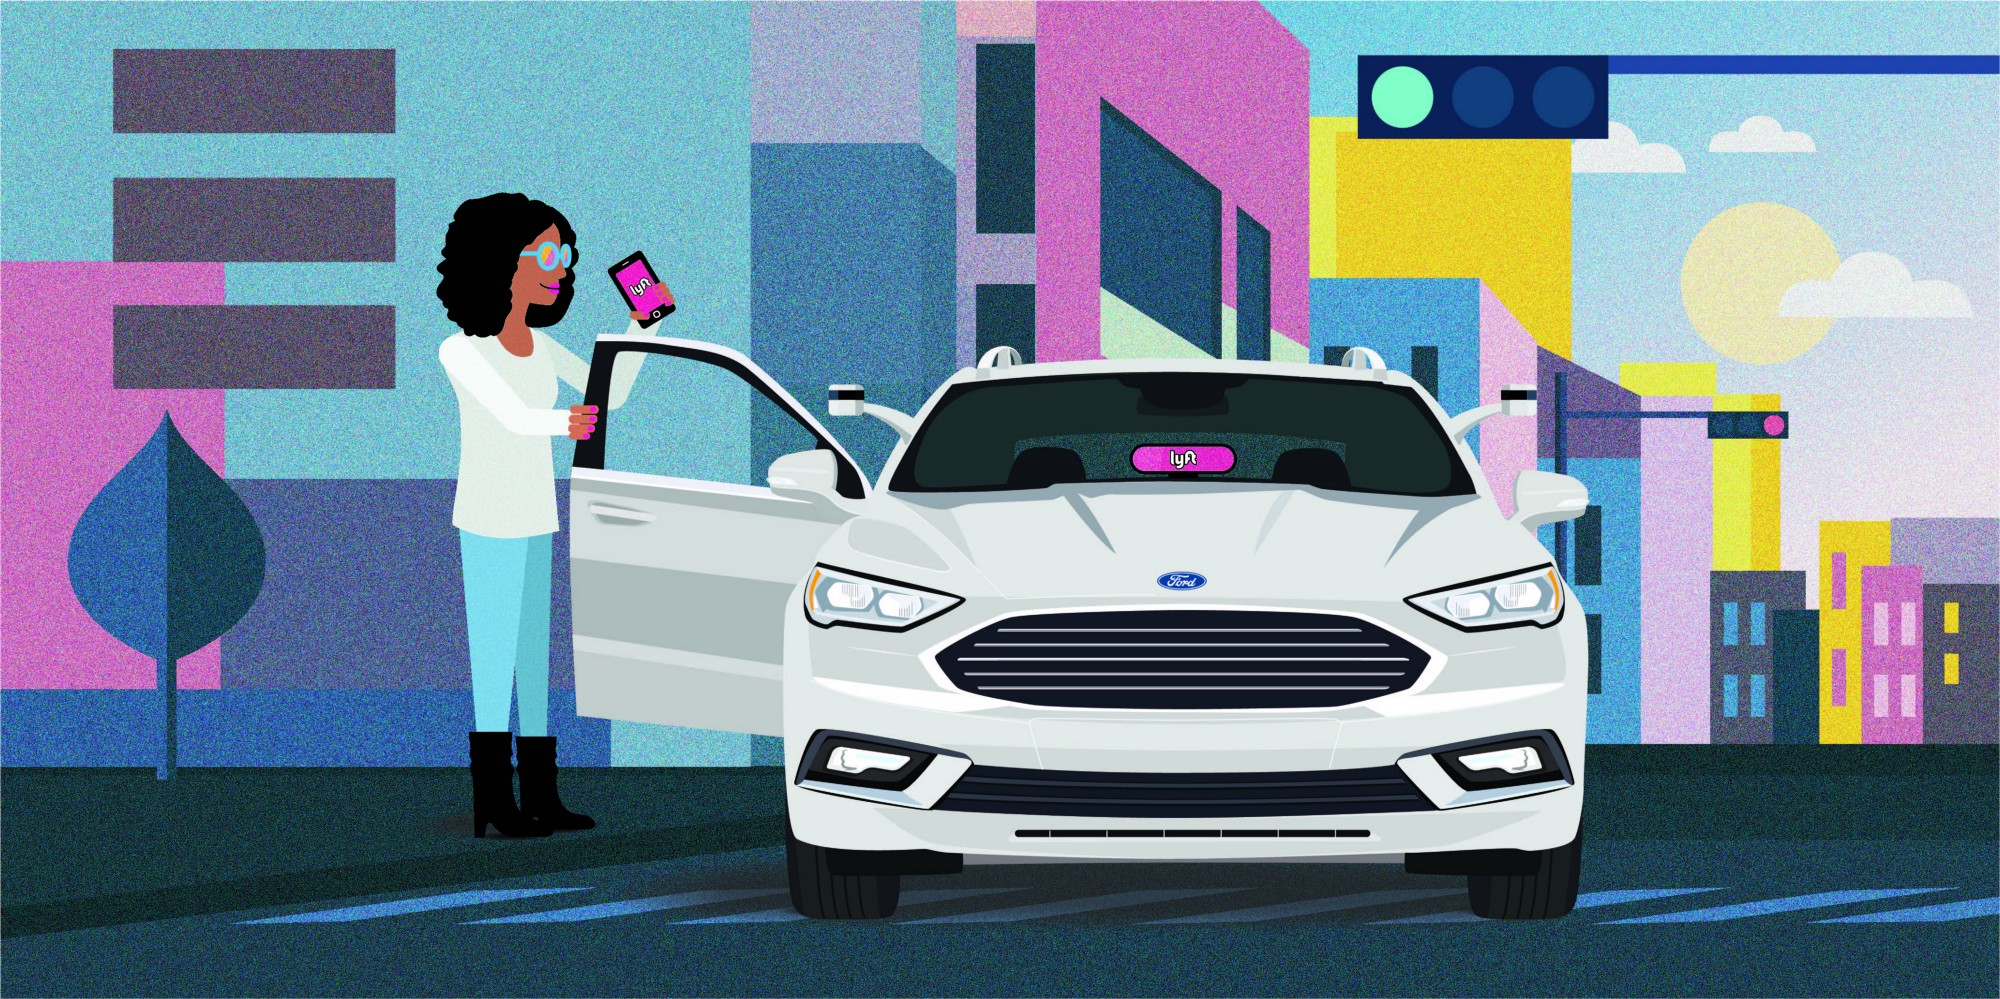 Ford and Lyft's new self-driving partnership likely to be a standard model